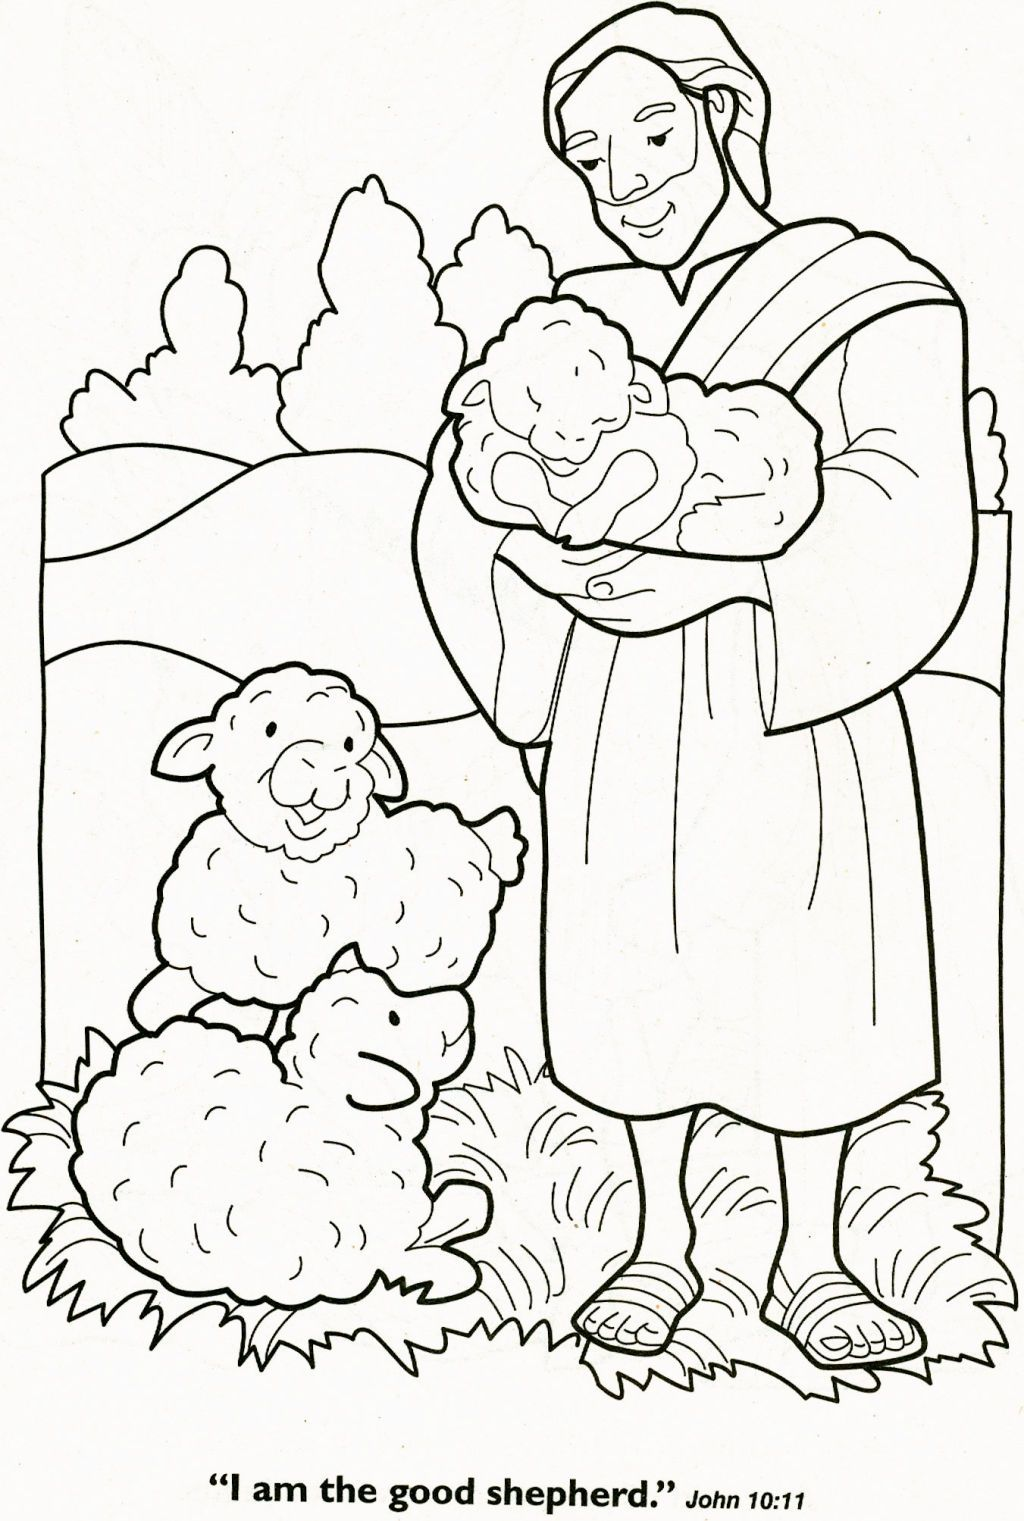 The Lord Is My Shepherd Coloring Page | Coloring Pages | Pinterest ...